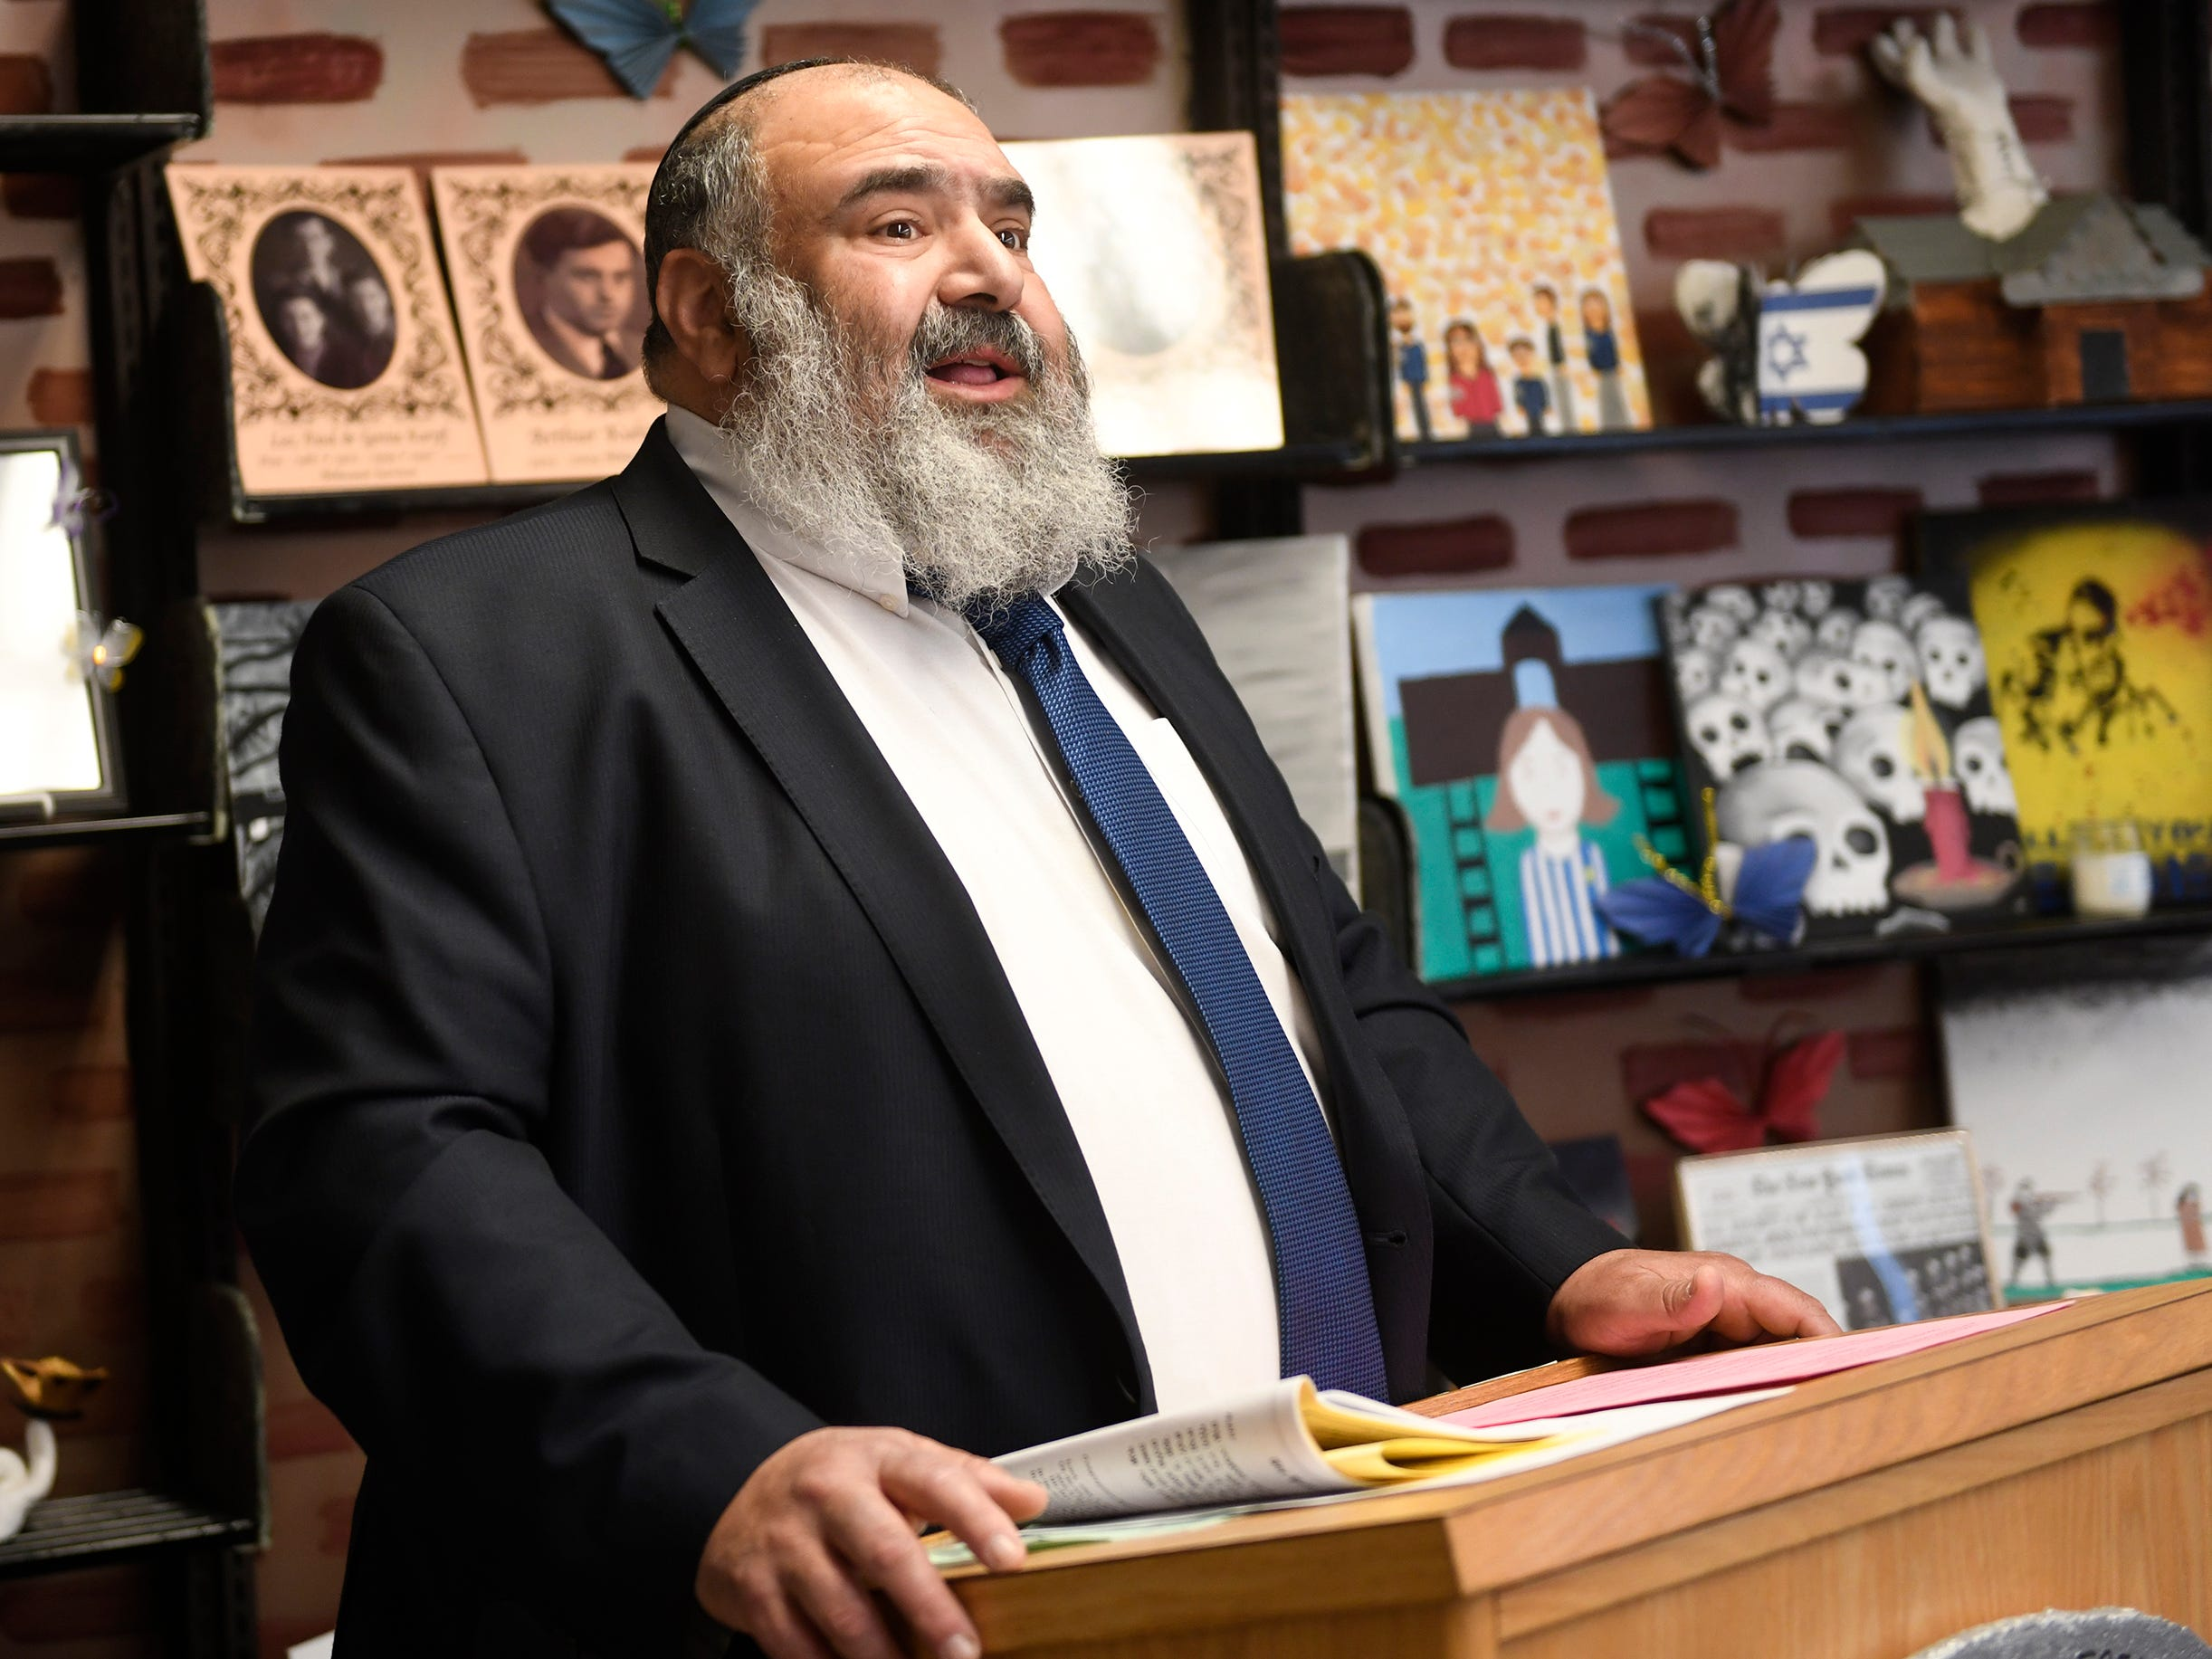 Rabbi Yisroel Rapoport speaks during a special dedication for a permanent Vineland Holocaust survivors exhibit in the Vineland High School library on Wednesday, May 8, 2019.